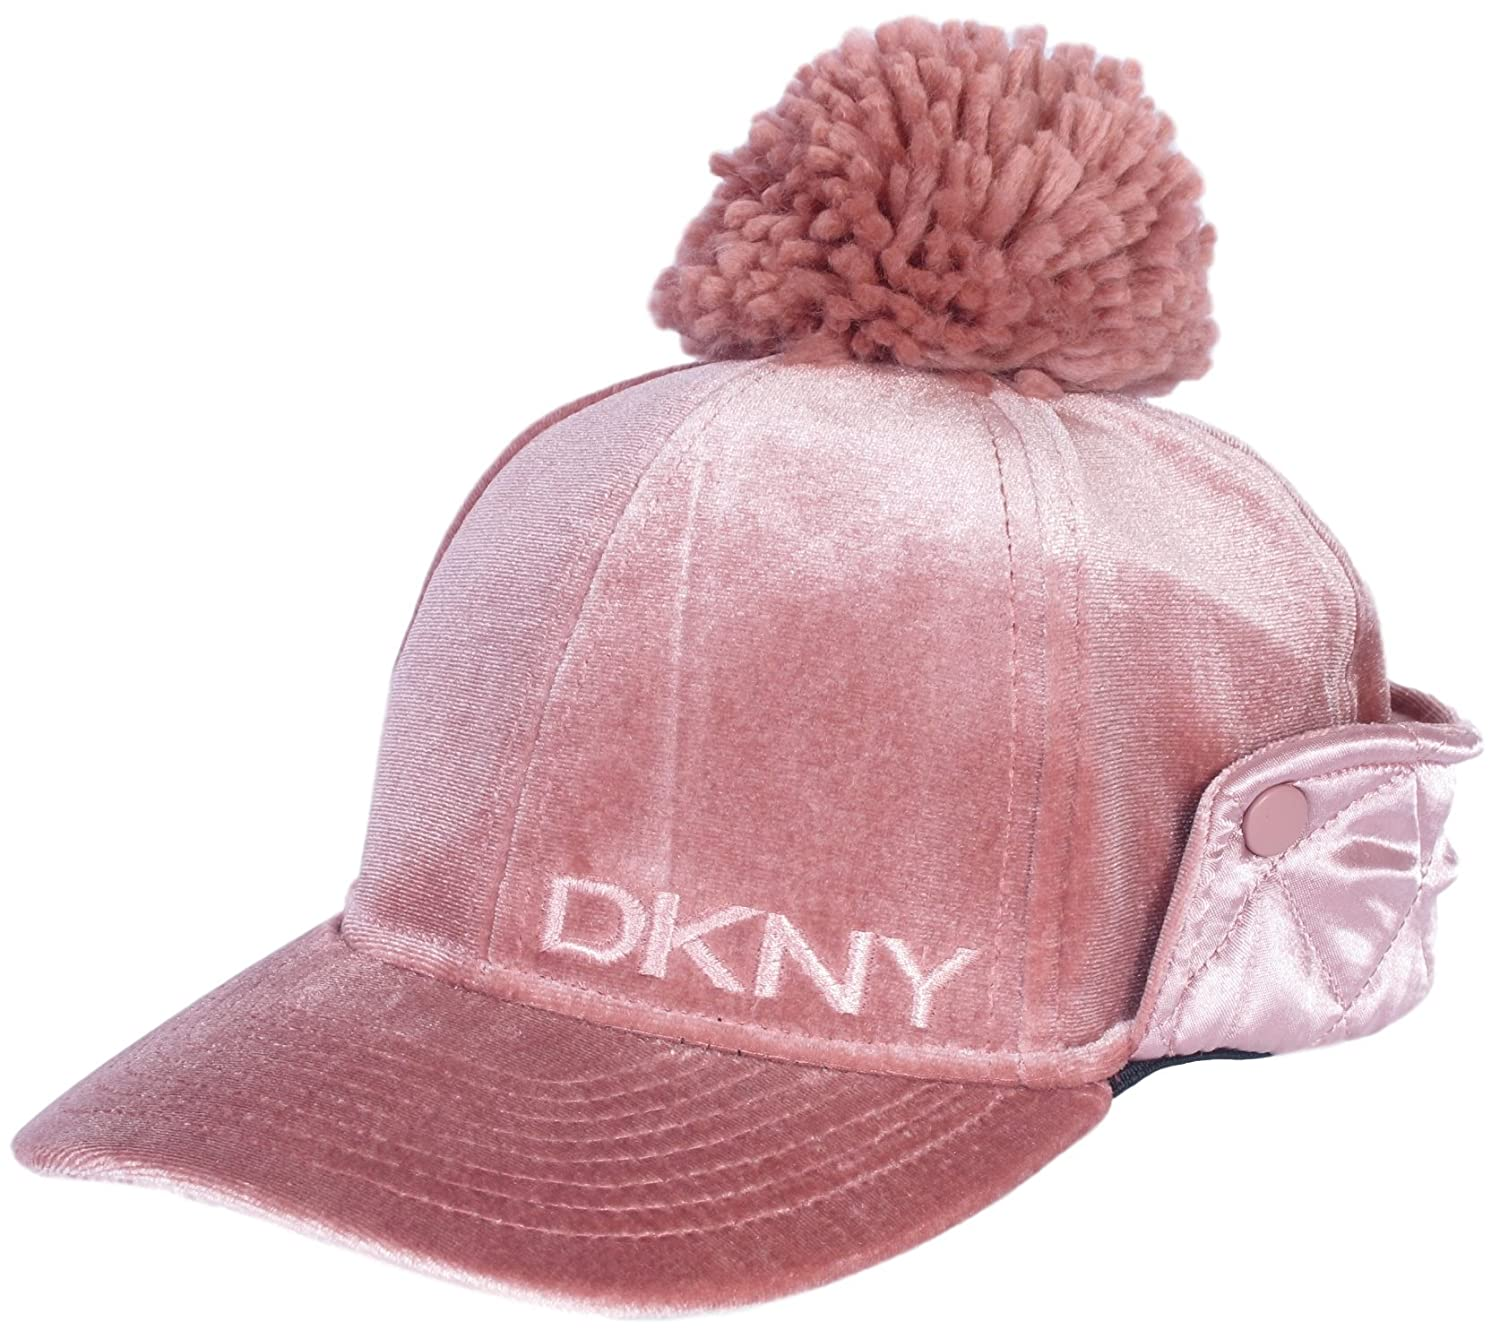 DKNY Girl's Velvet Bomber Hat With Satin Ear Flap and Pom Pom Blush Size 7-16'